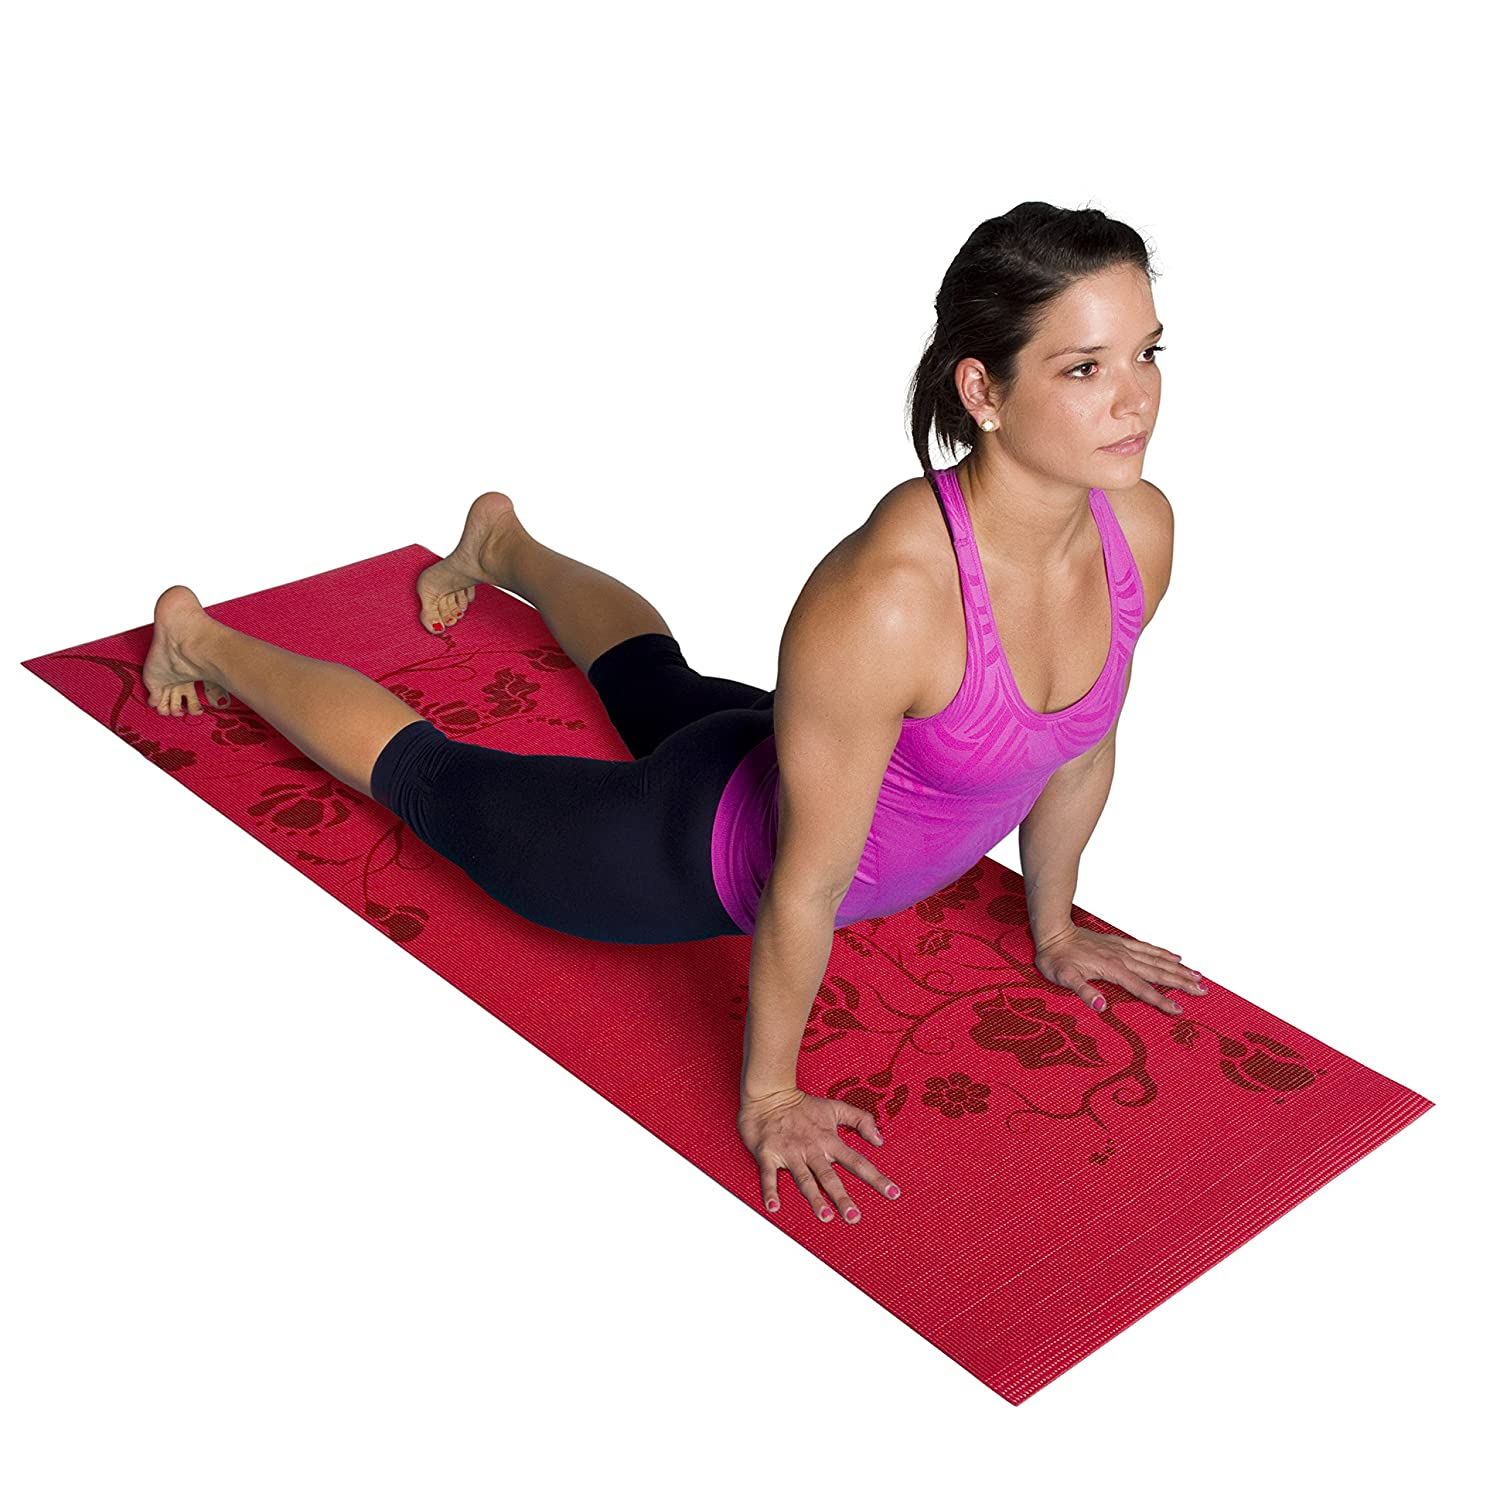 amazon com tone fitness yoga mat with floral pattern red